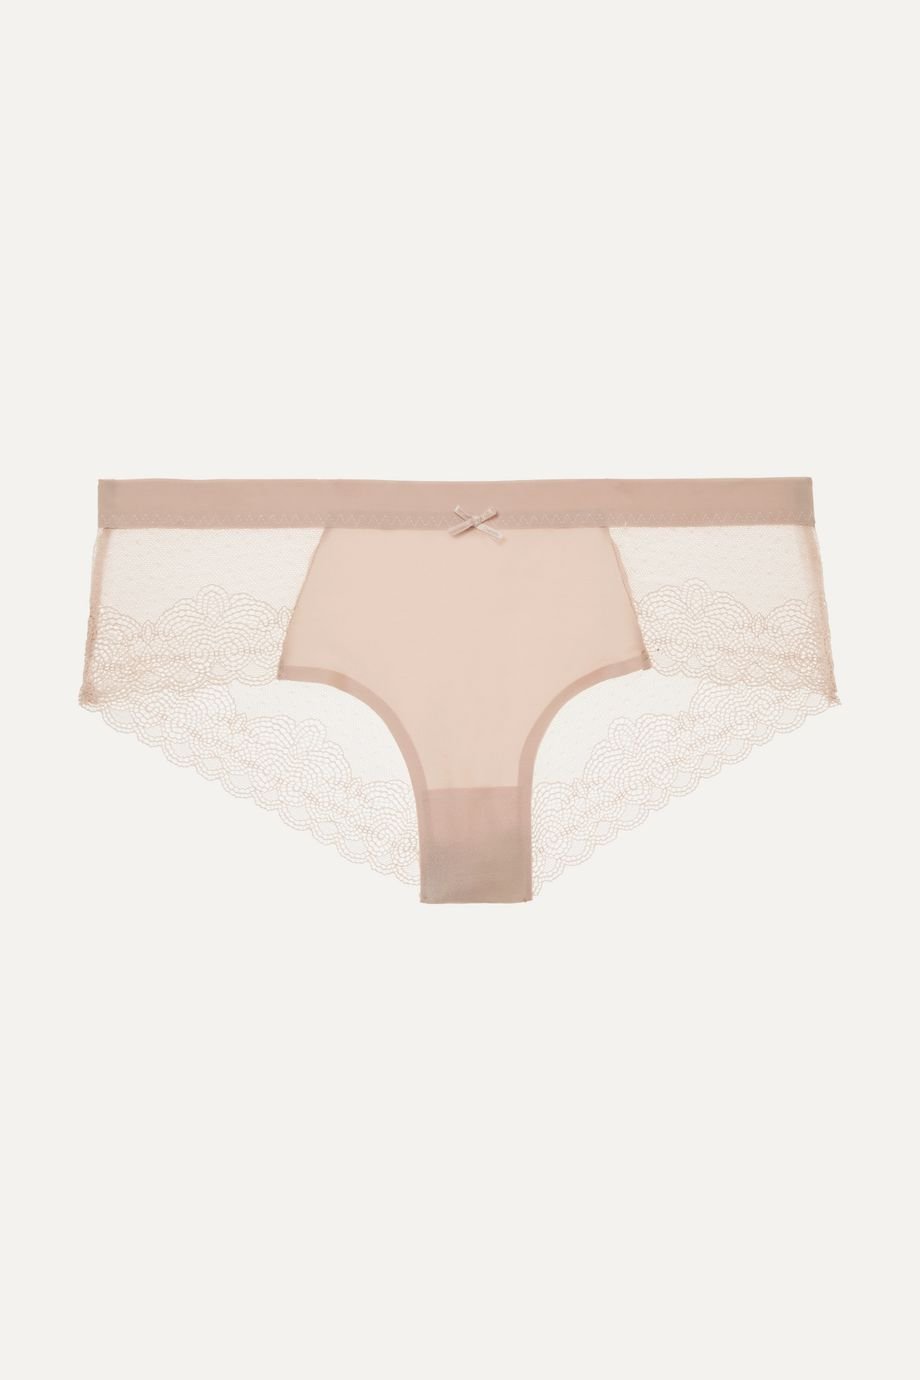 Chantelle Le Marais stretch-lace and point d'esprit briefs